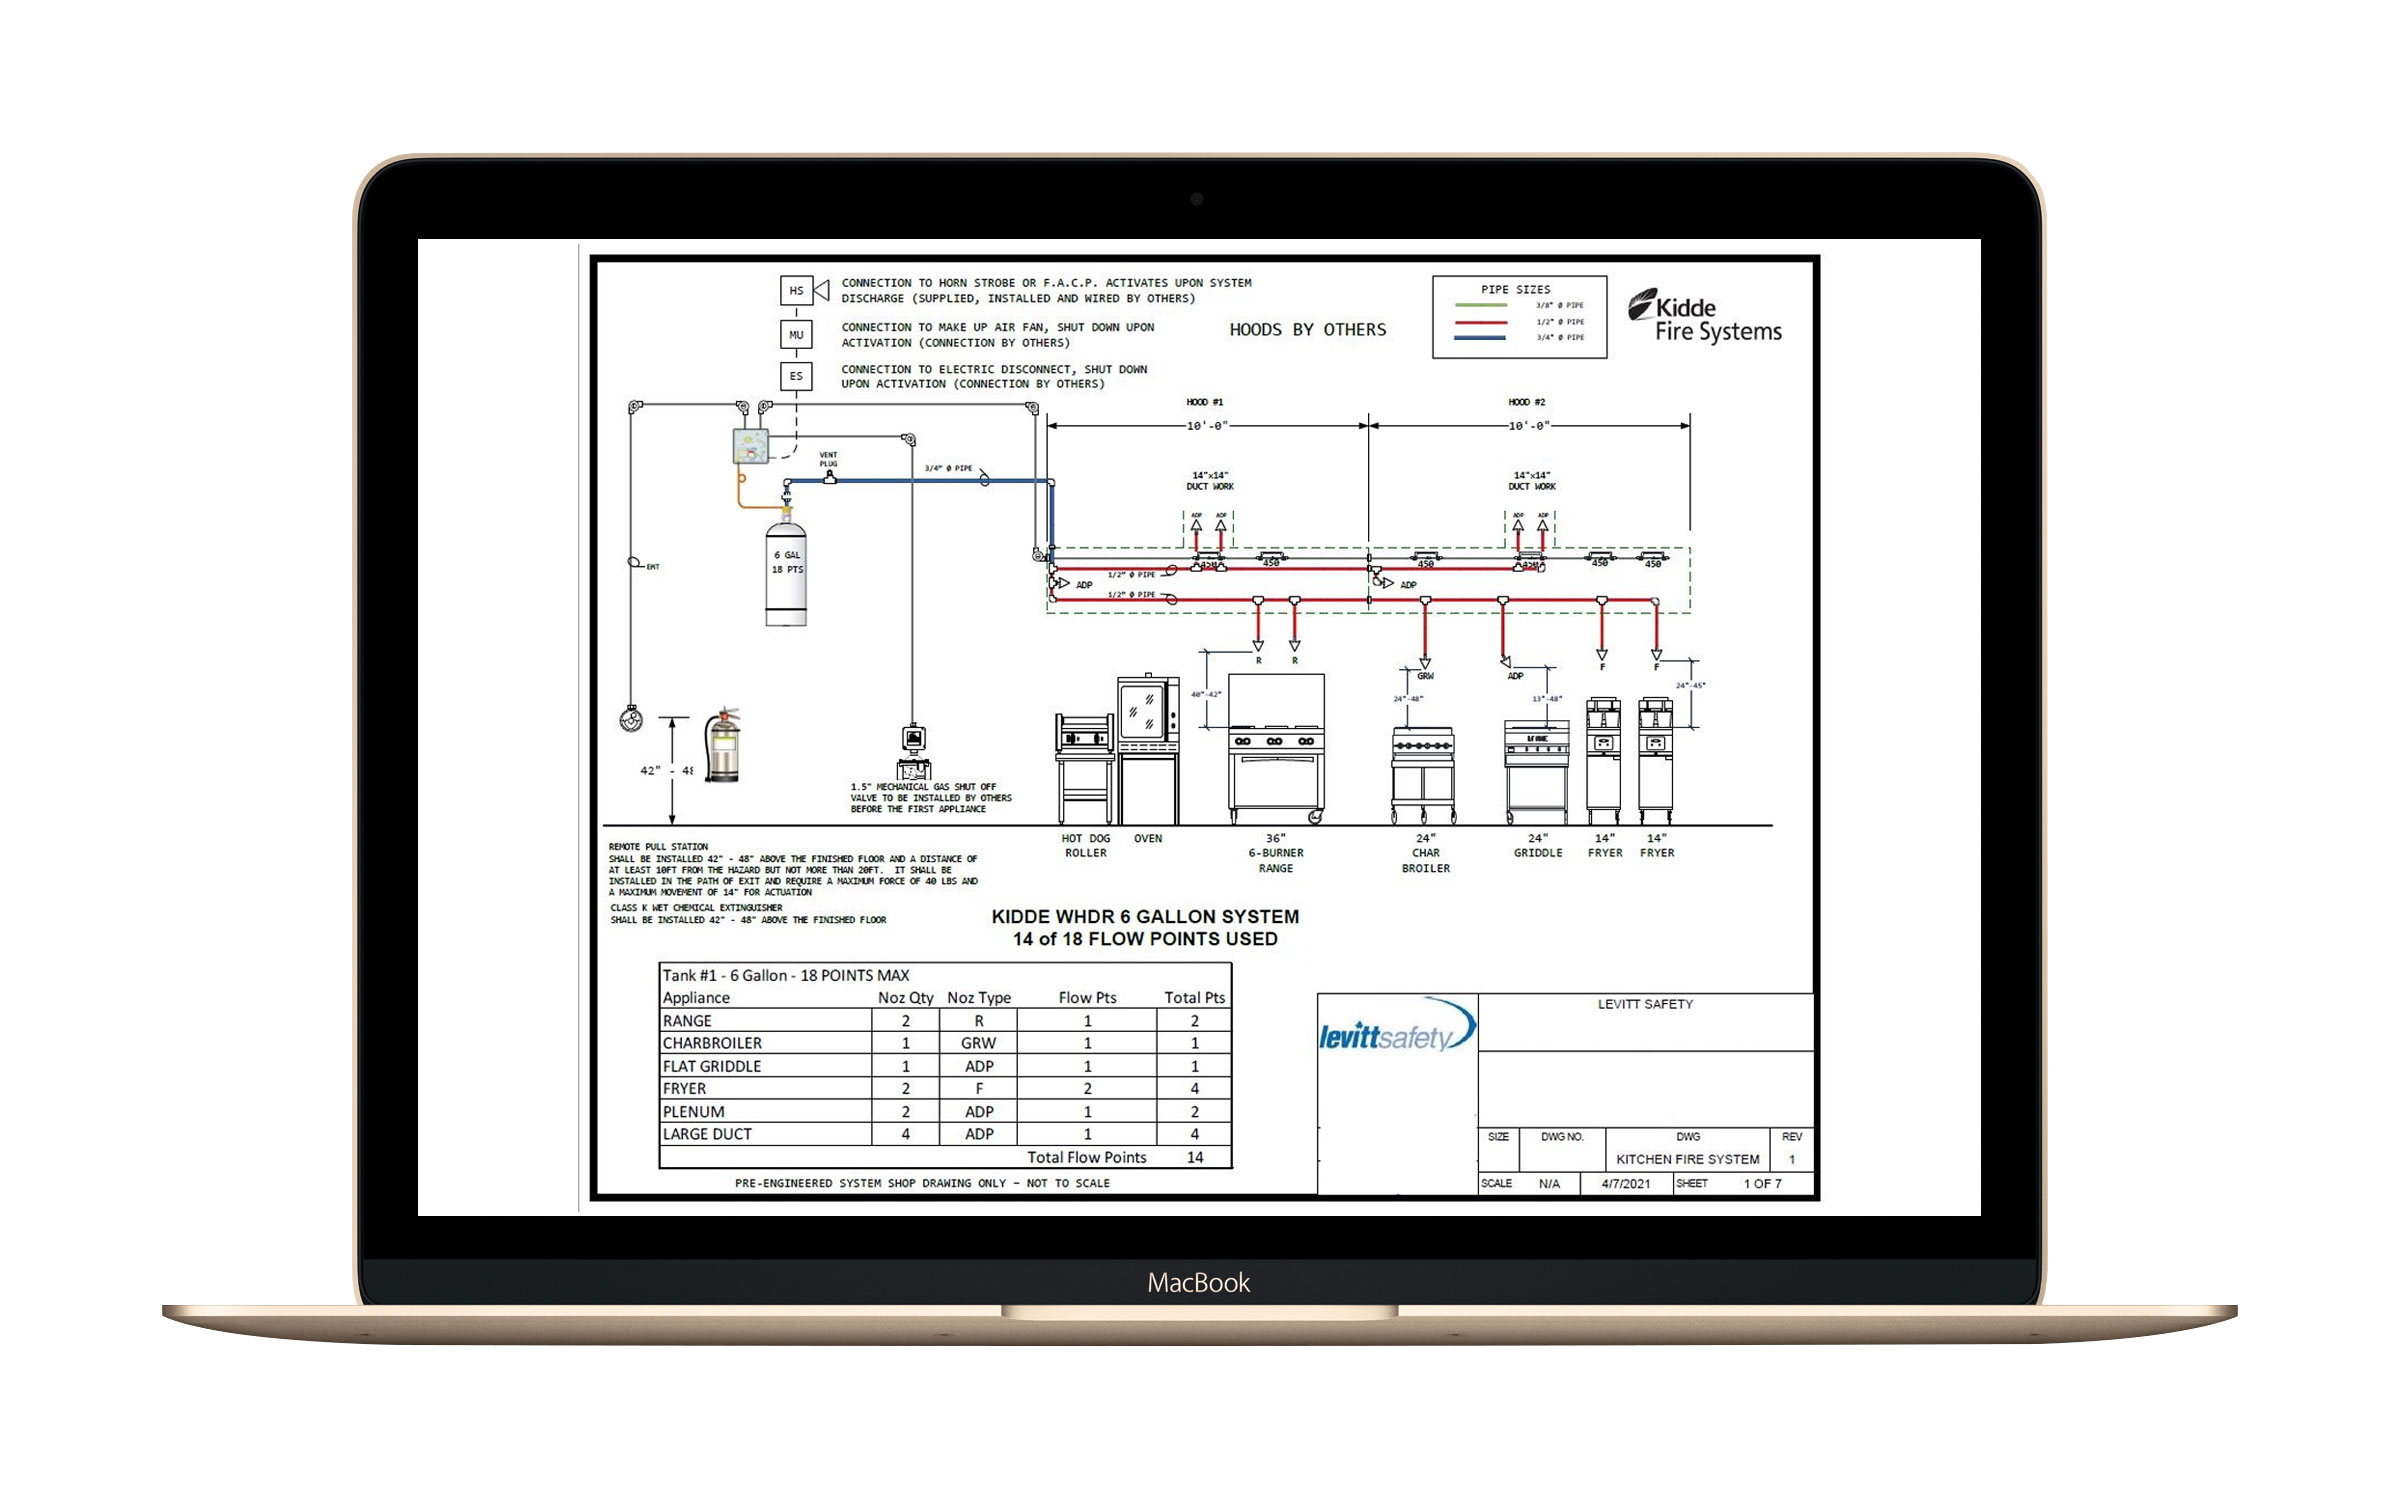 example of kitchen fire suppression systemc cad drawing